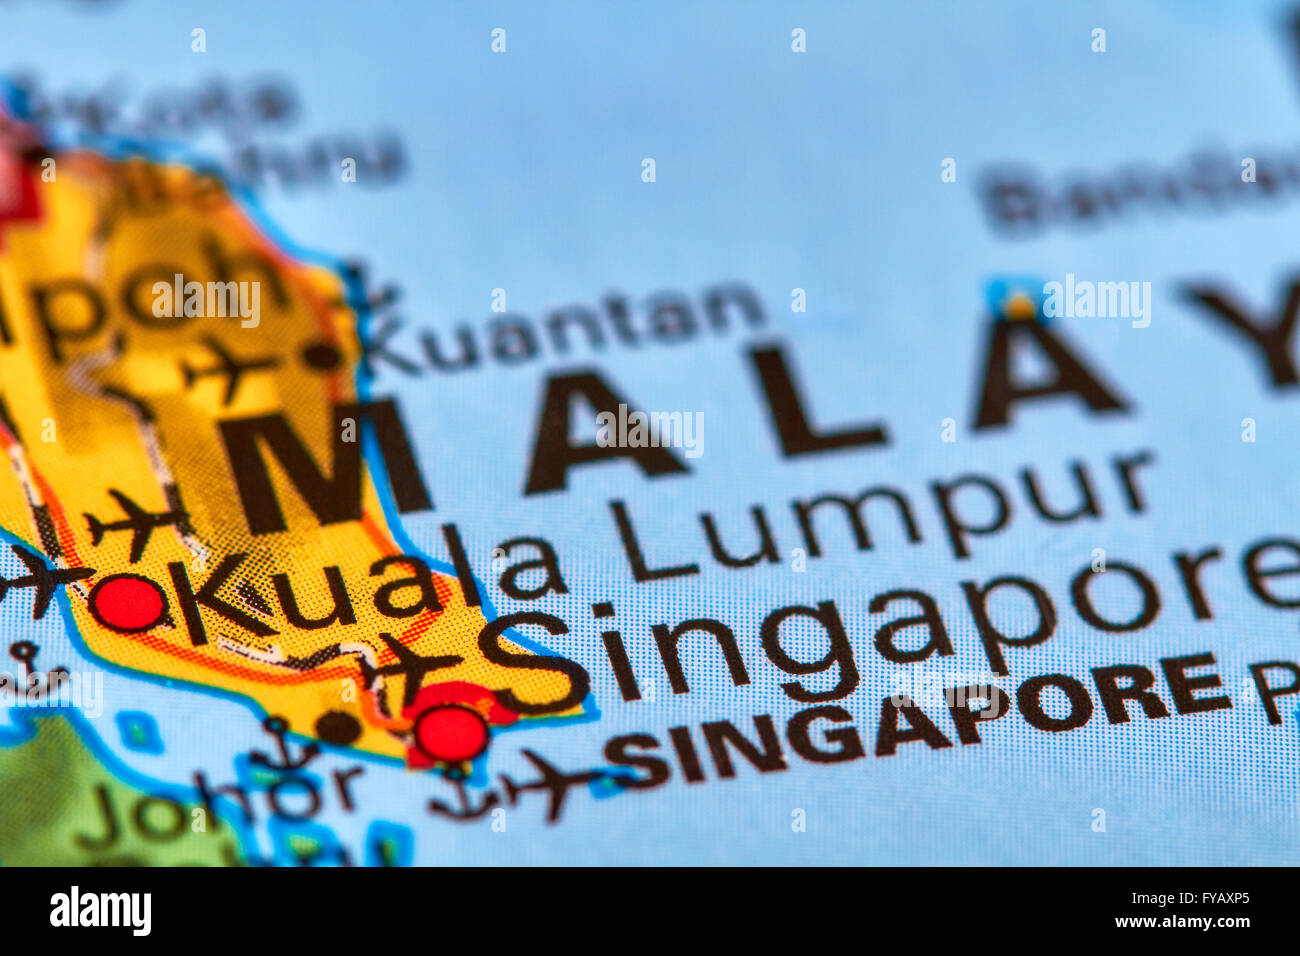 Kuala Lumpur Capital City of Malaysia on the World Map Stock